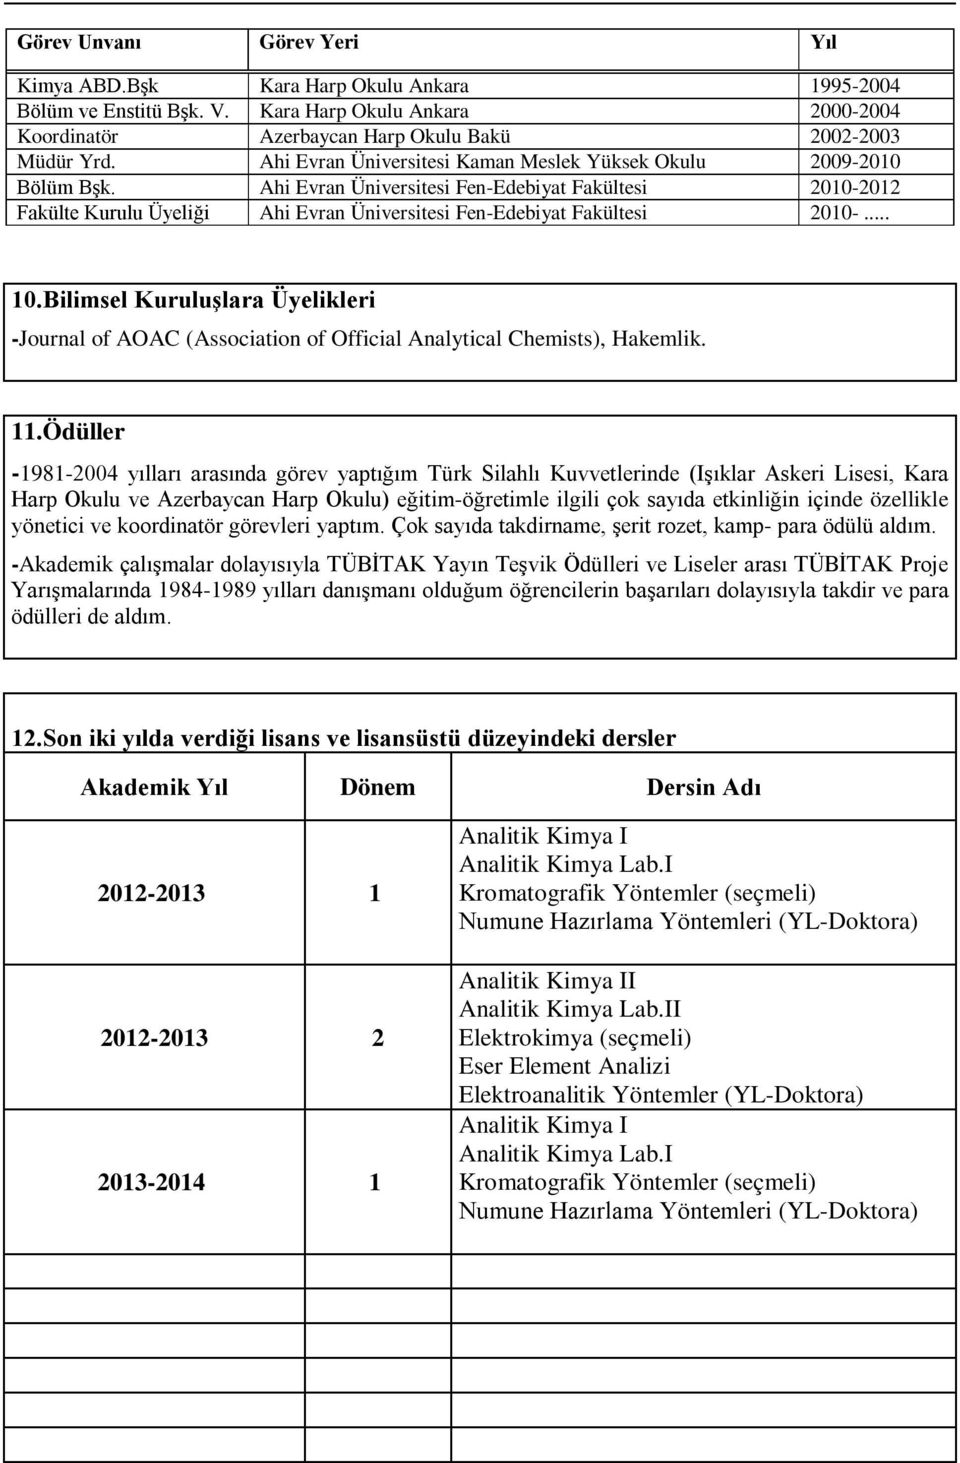 Bilimsel Kuruluşlara Üyelikleri Journal of AOAC (Association of Official Analytical Chemists), Hakemlik. 11.